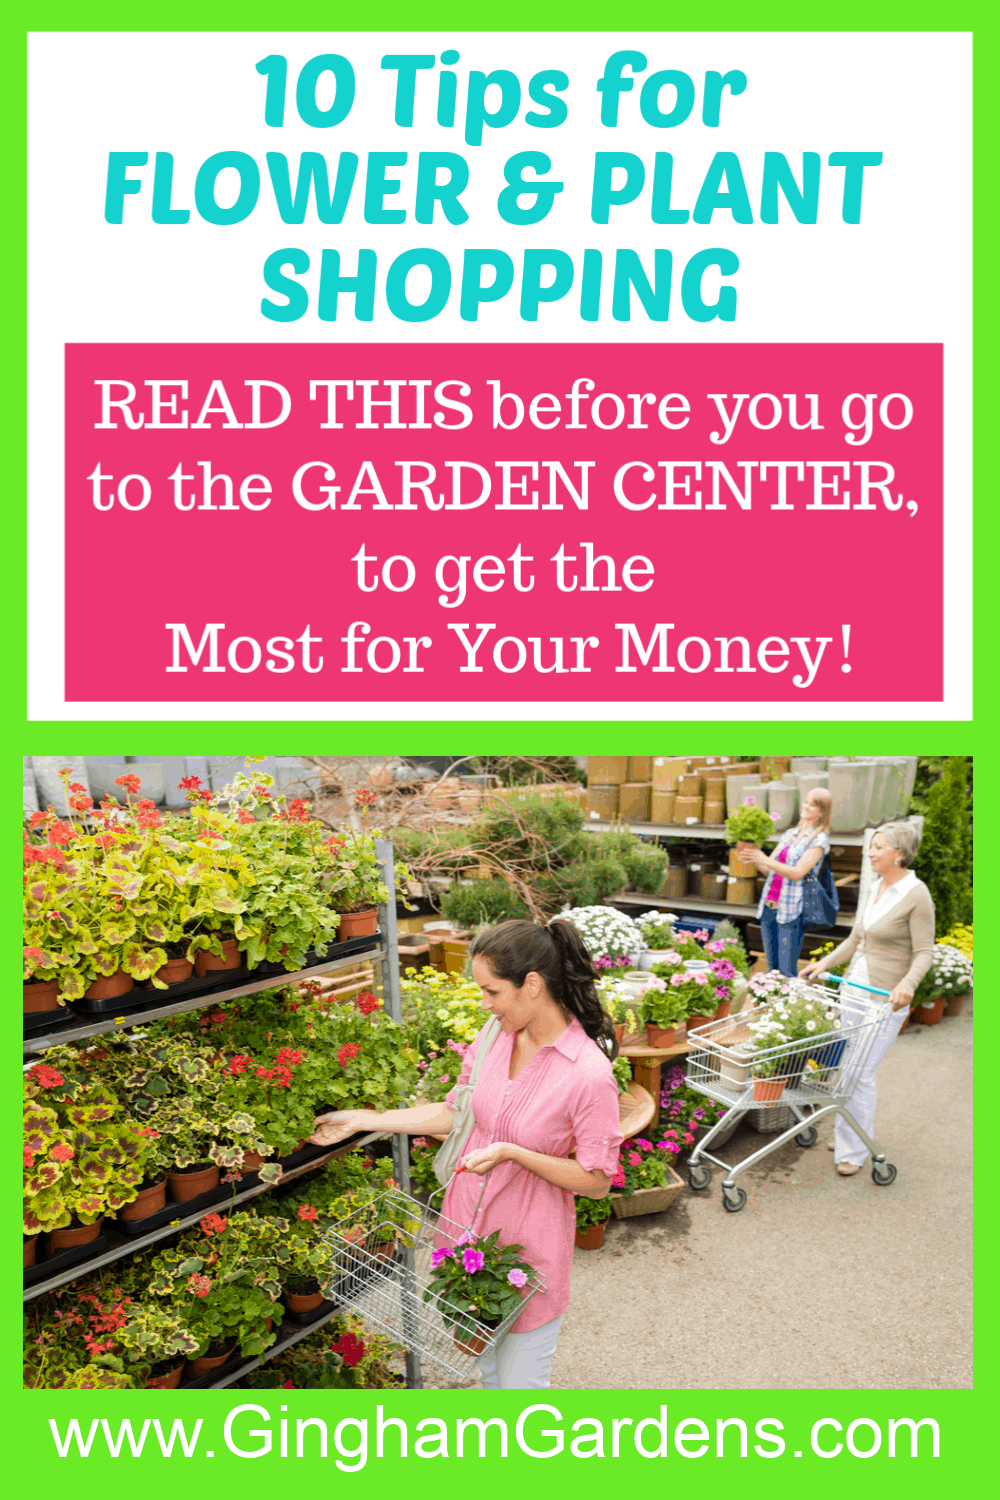 Image of Garden Center with Text Overlay - 10 Tips for Flower and Plant Shopping